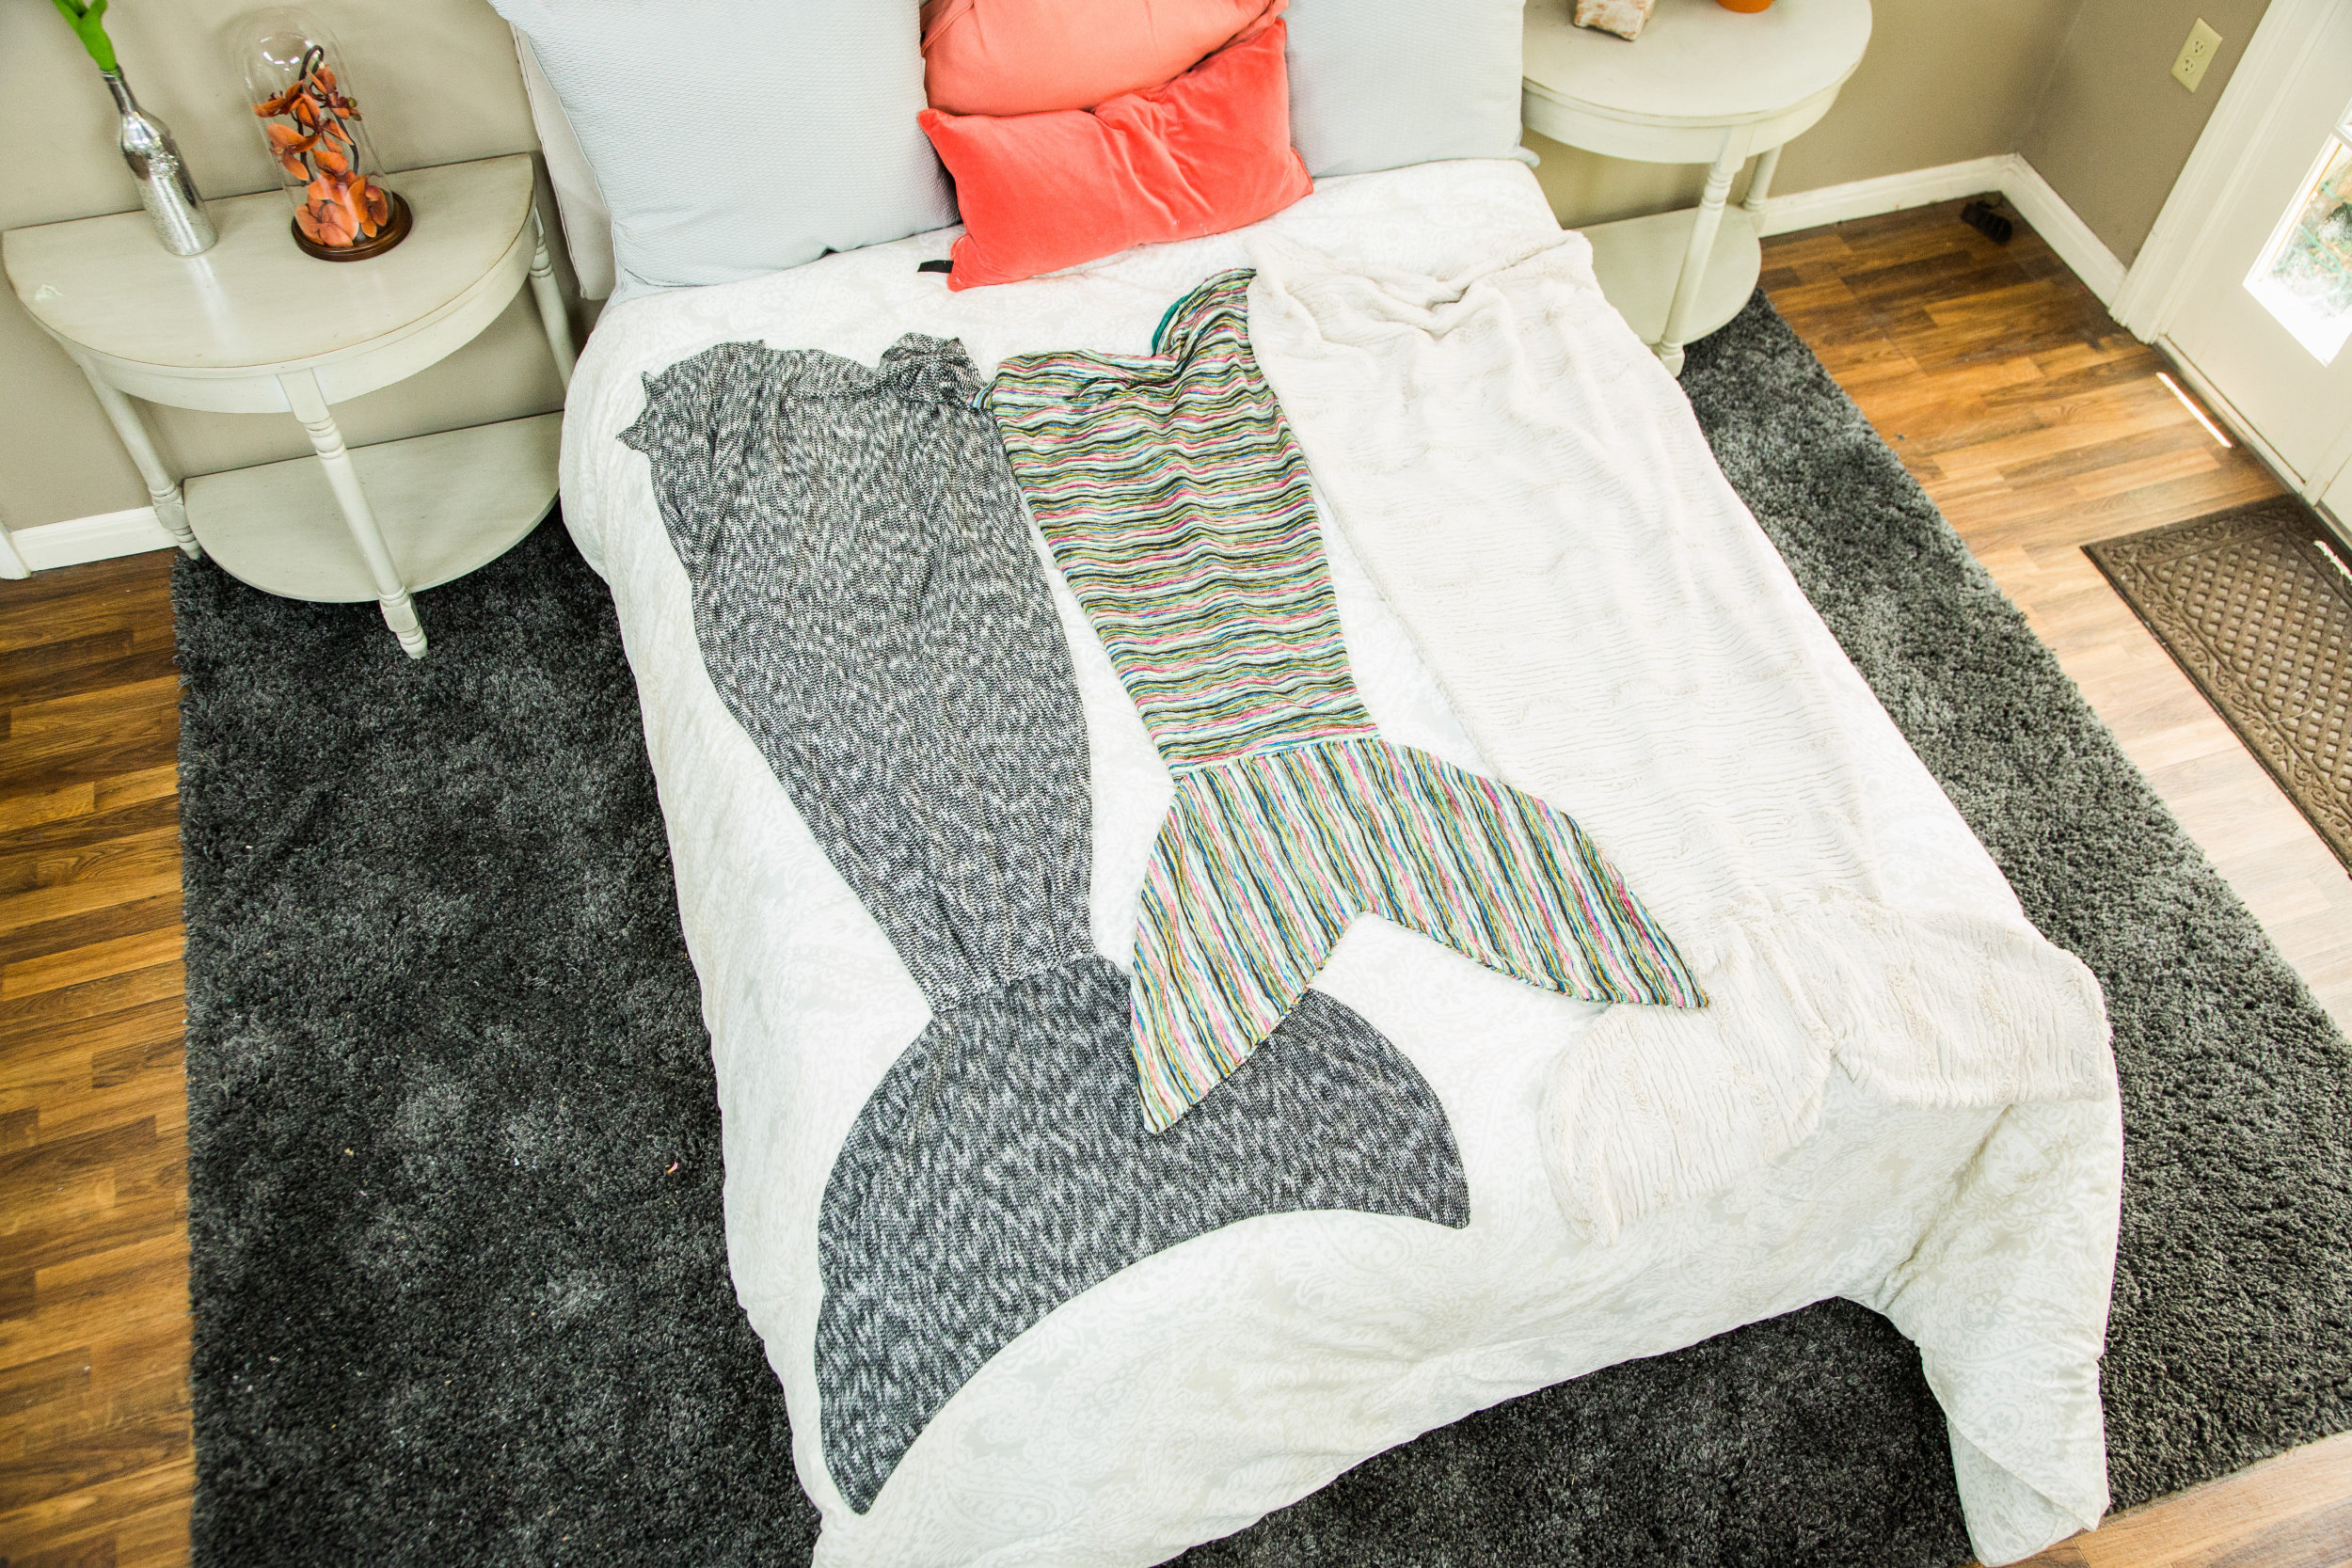 How To - Home & Family: DIY Mermaid Tail Blanket | Hallmark Channel